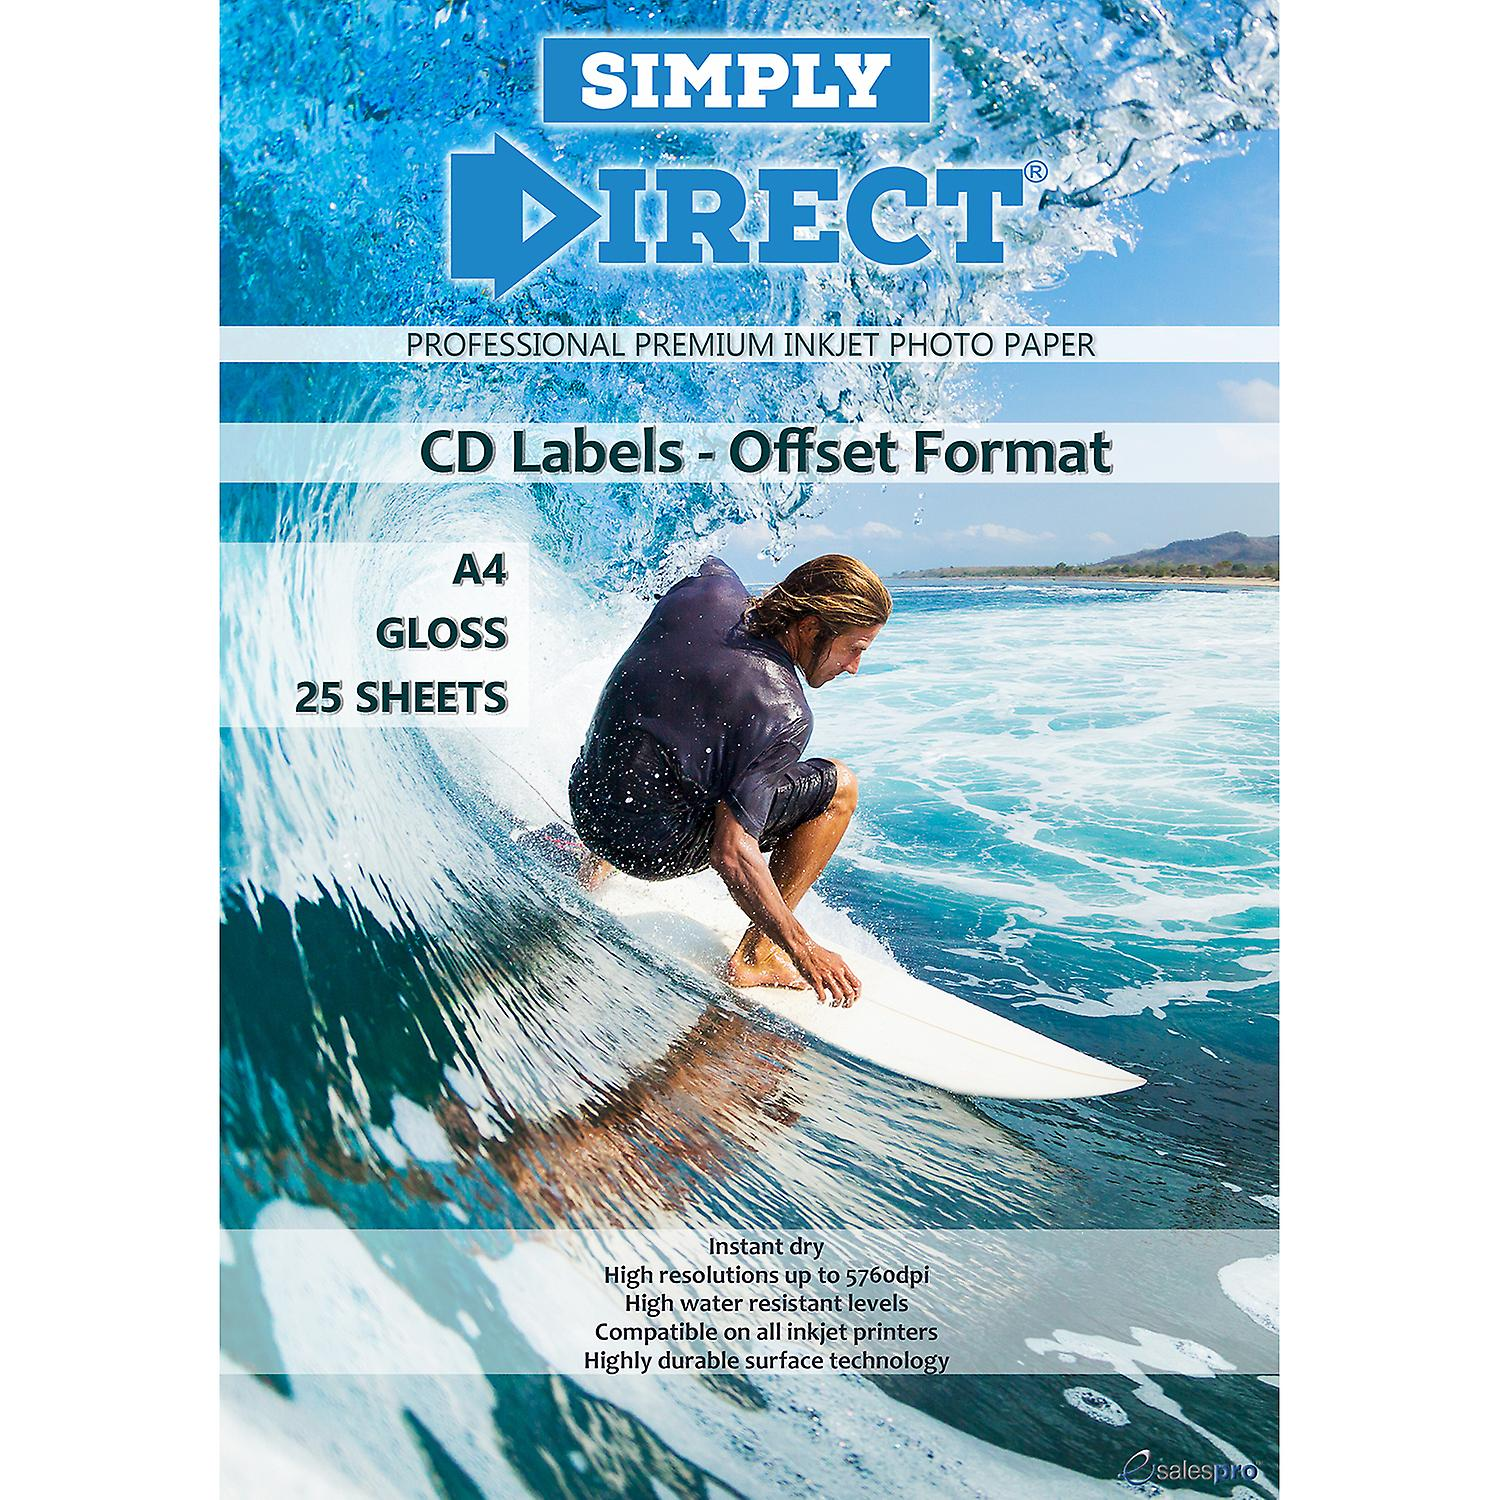 25 x Simply Direct A4 Gloss Offset CD / DVD / Blu-ray Disk Label, 2 Labels Per Sheet - 130gsm - Professional Premium Inkjet Paper